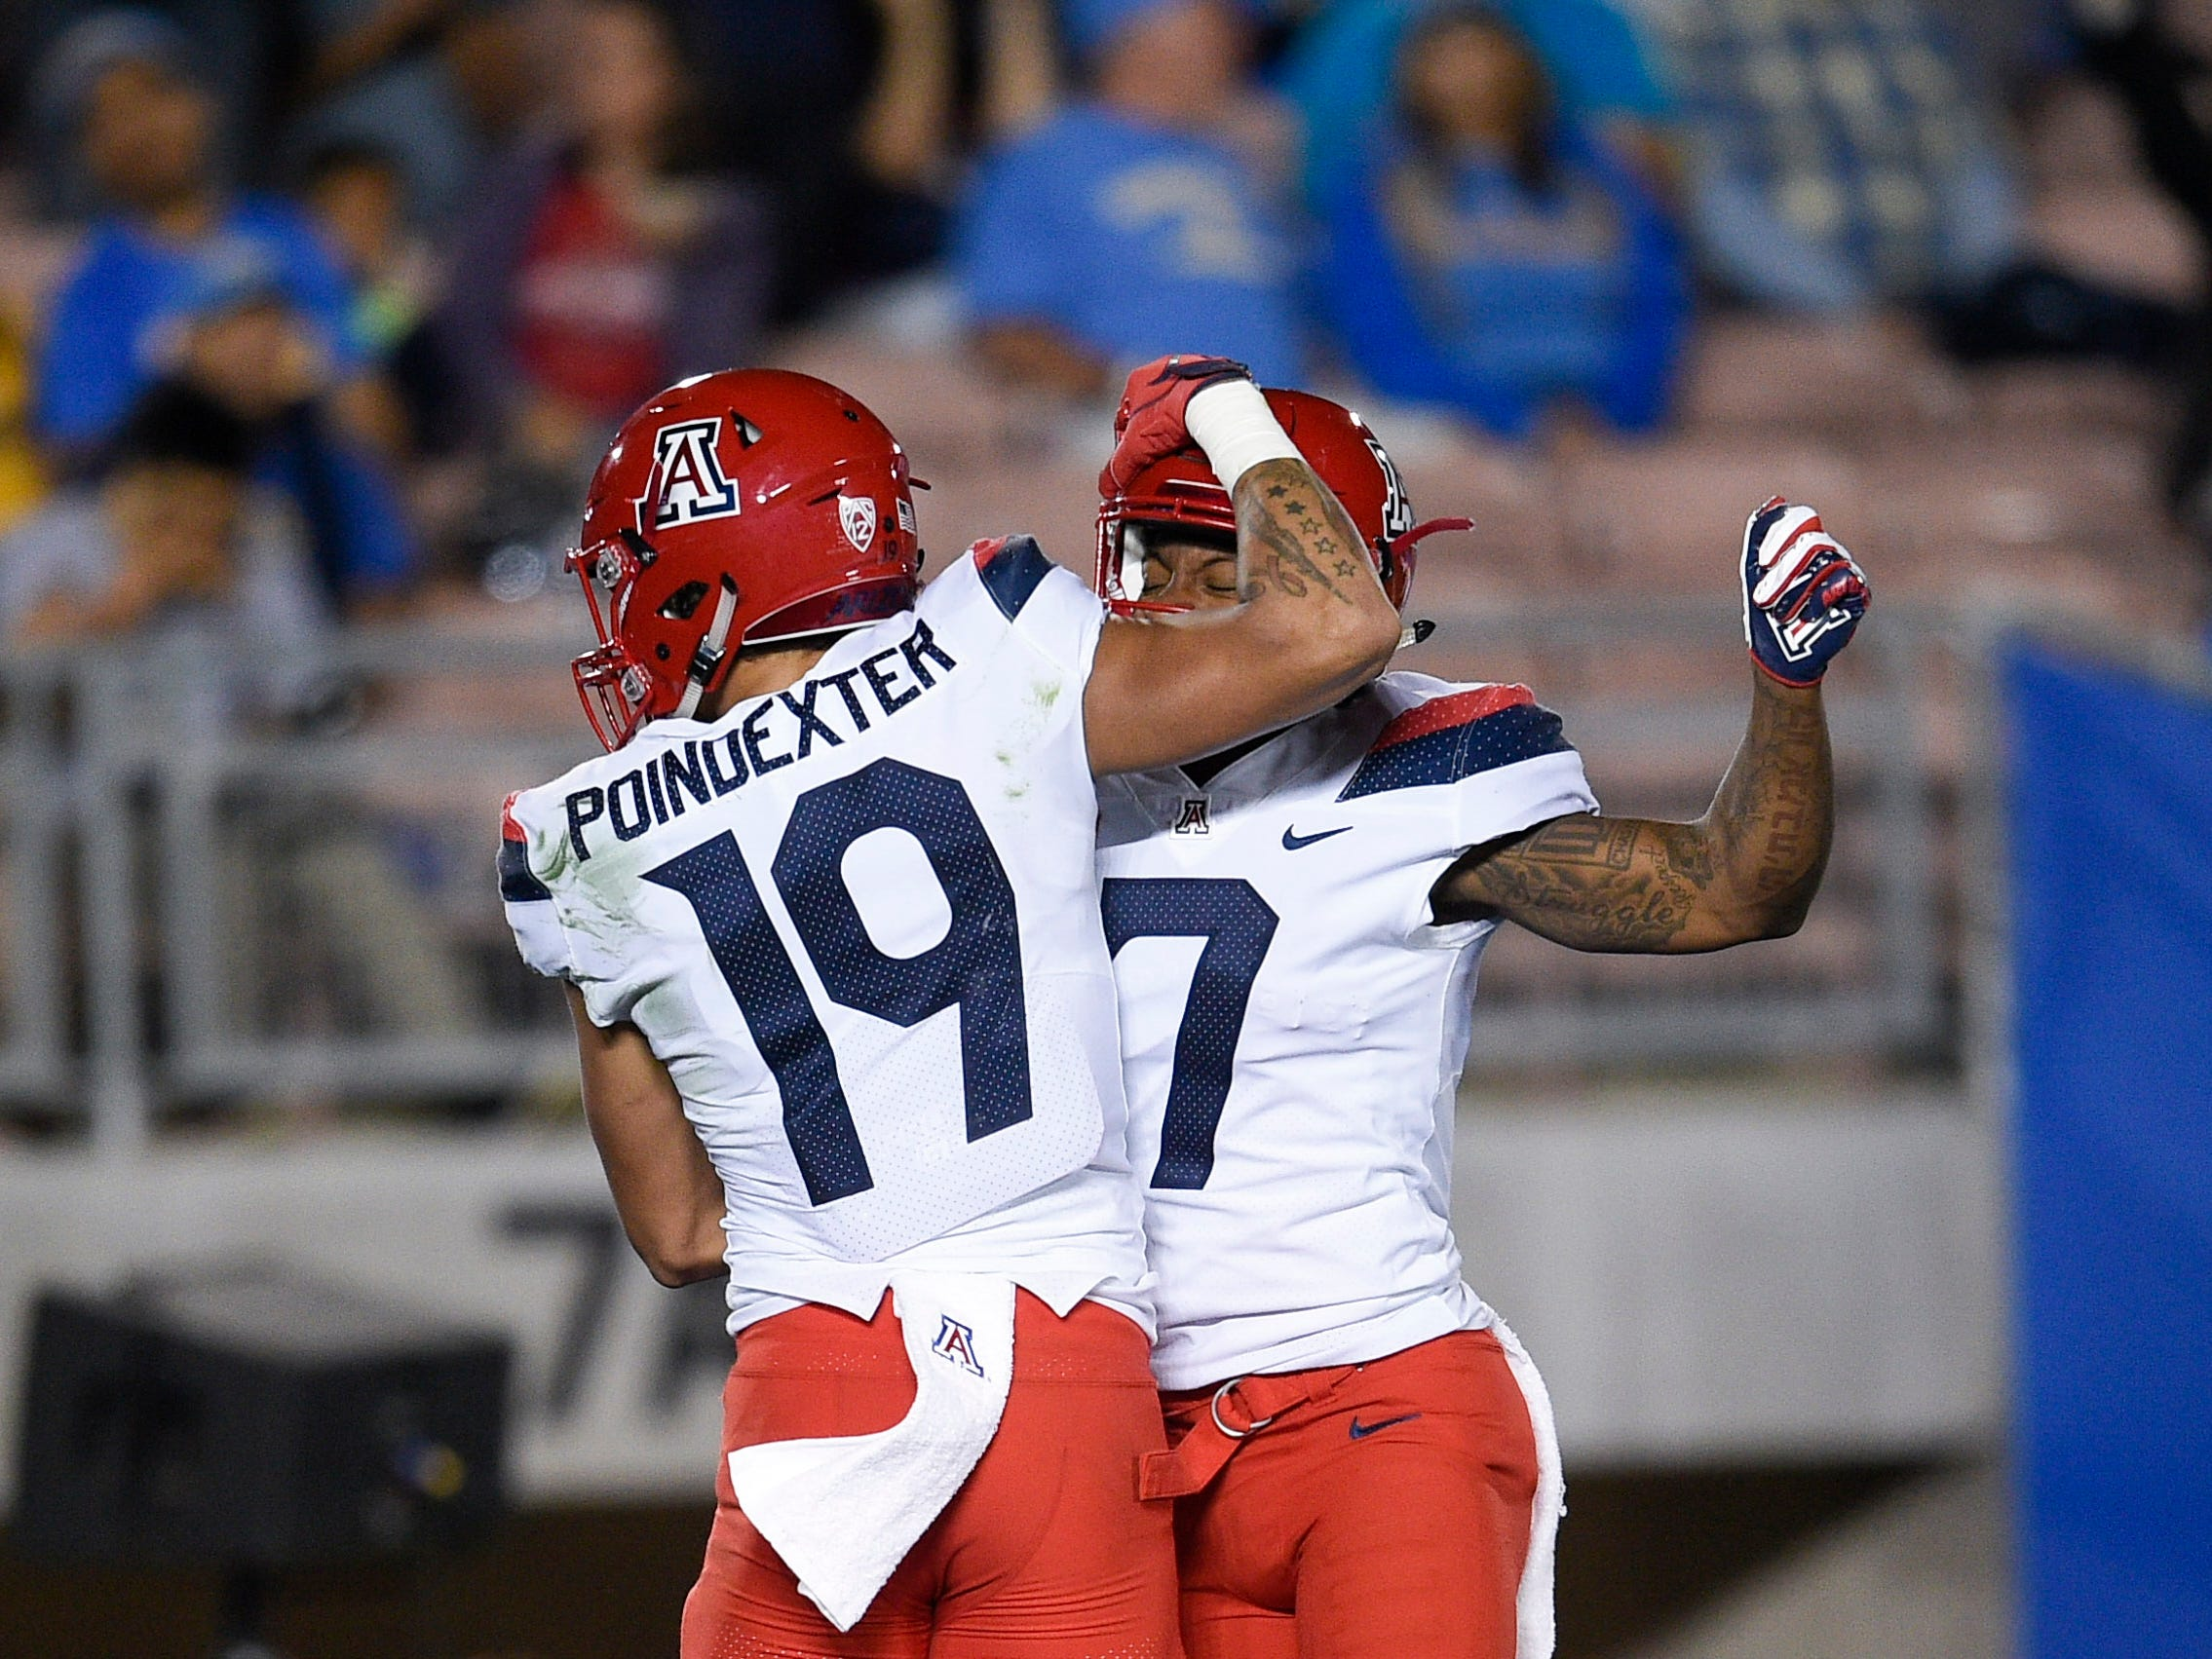 Oct 20, 2018; Pasadena, CA, USA; Arizona Wildcats wide receiver Shawn Poindexter (19) celebrates his touchdown catch with Arizona Wildcats wide receiver Devaughn Cooper (7) during the first half against the UCLA Bruins at Rose Bowl. Mandatory Credit: Kelvin Kuo-USA TODAY Sports